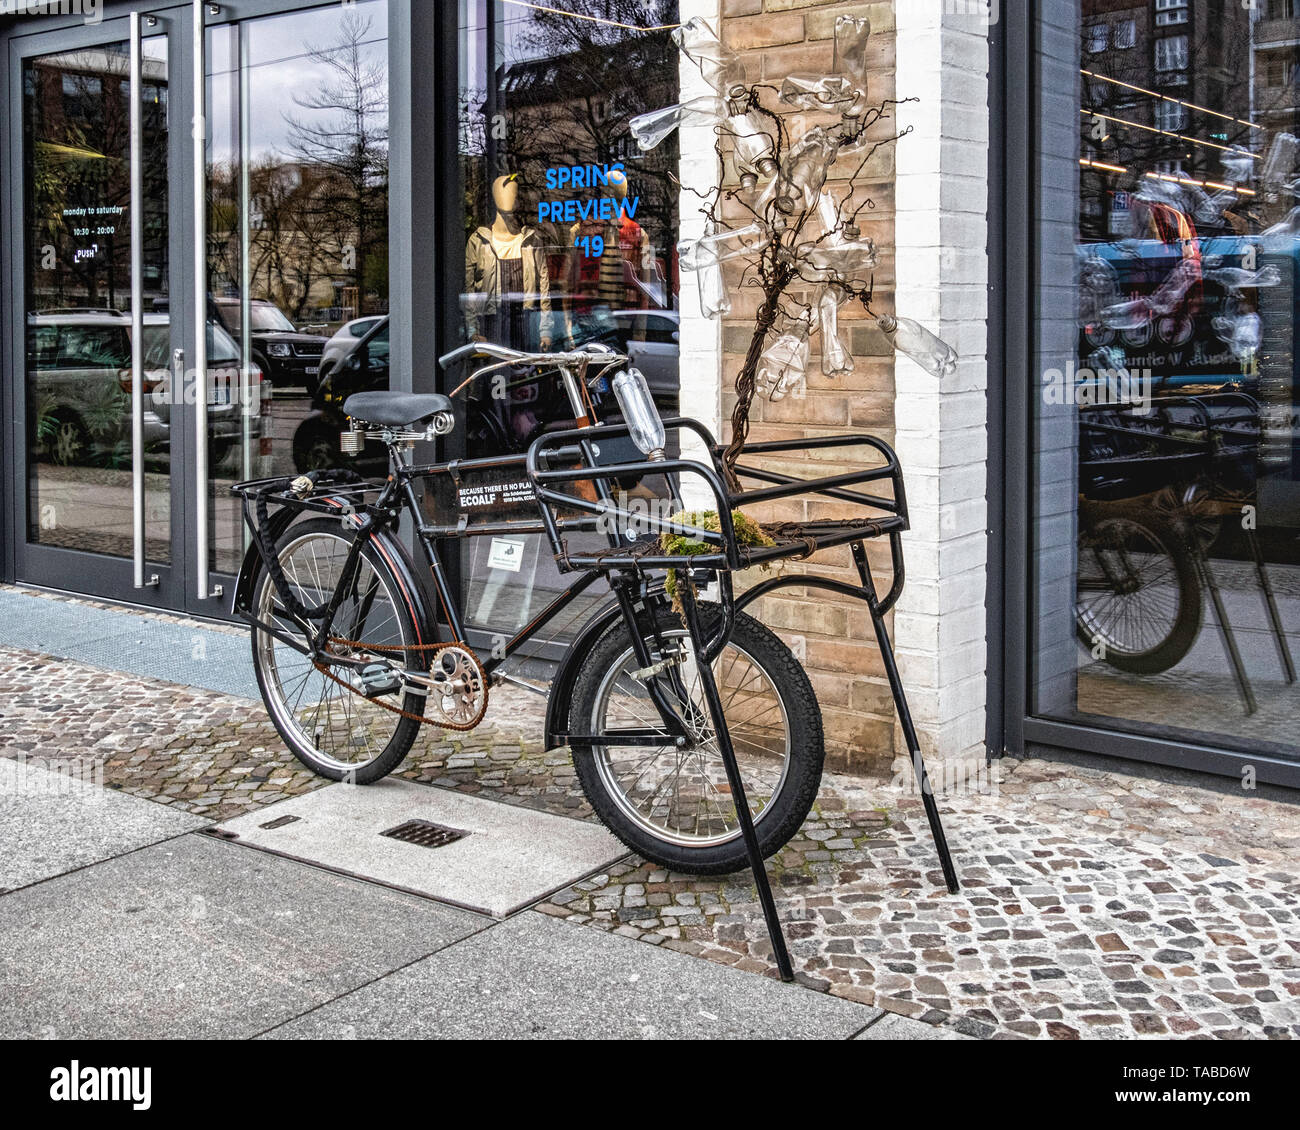 Berlin,Mitte, Ecoalf store display window and advertisement. Bicycle with tree of plastic bottles. Clothes made of recycled cotton & plastic bottles Stock Photo